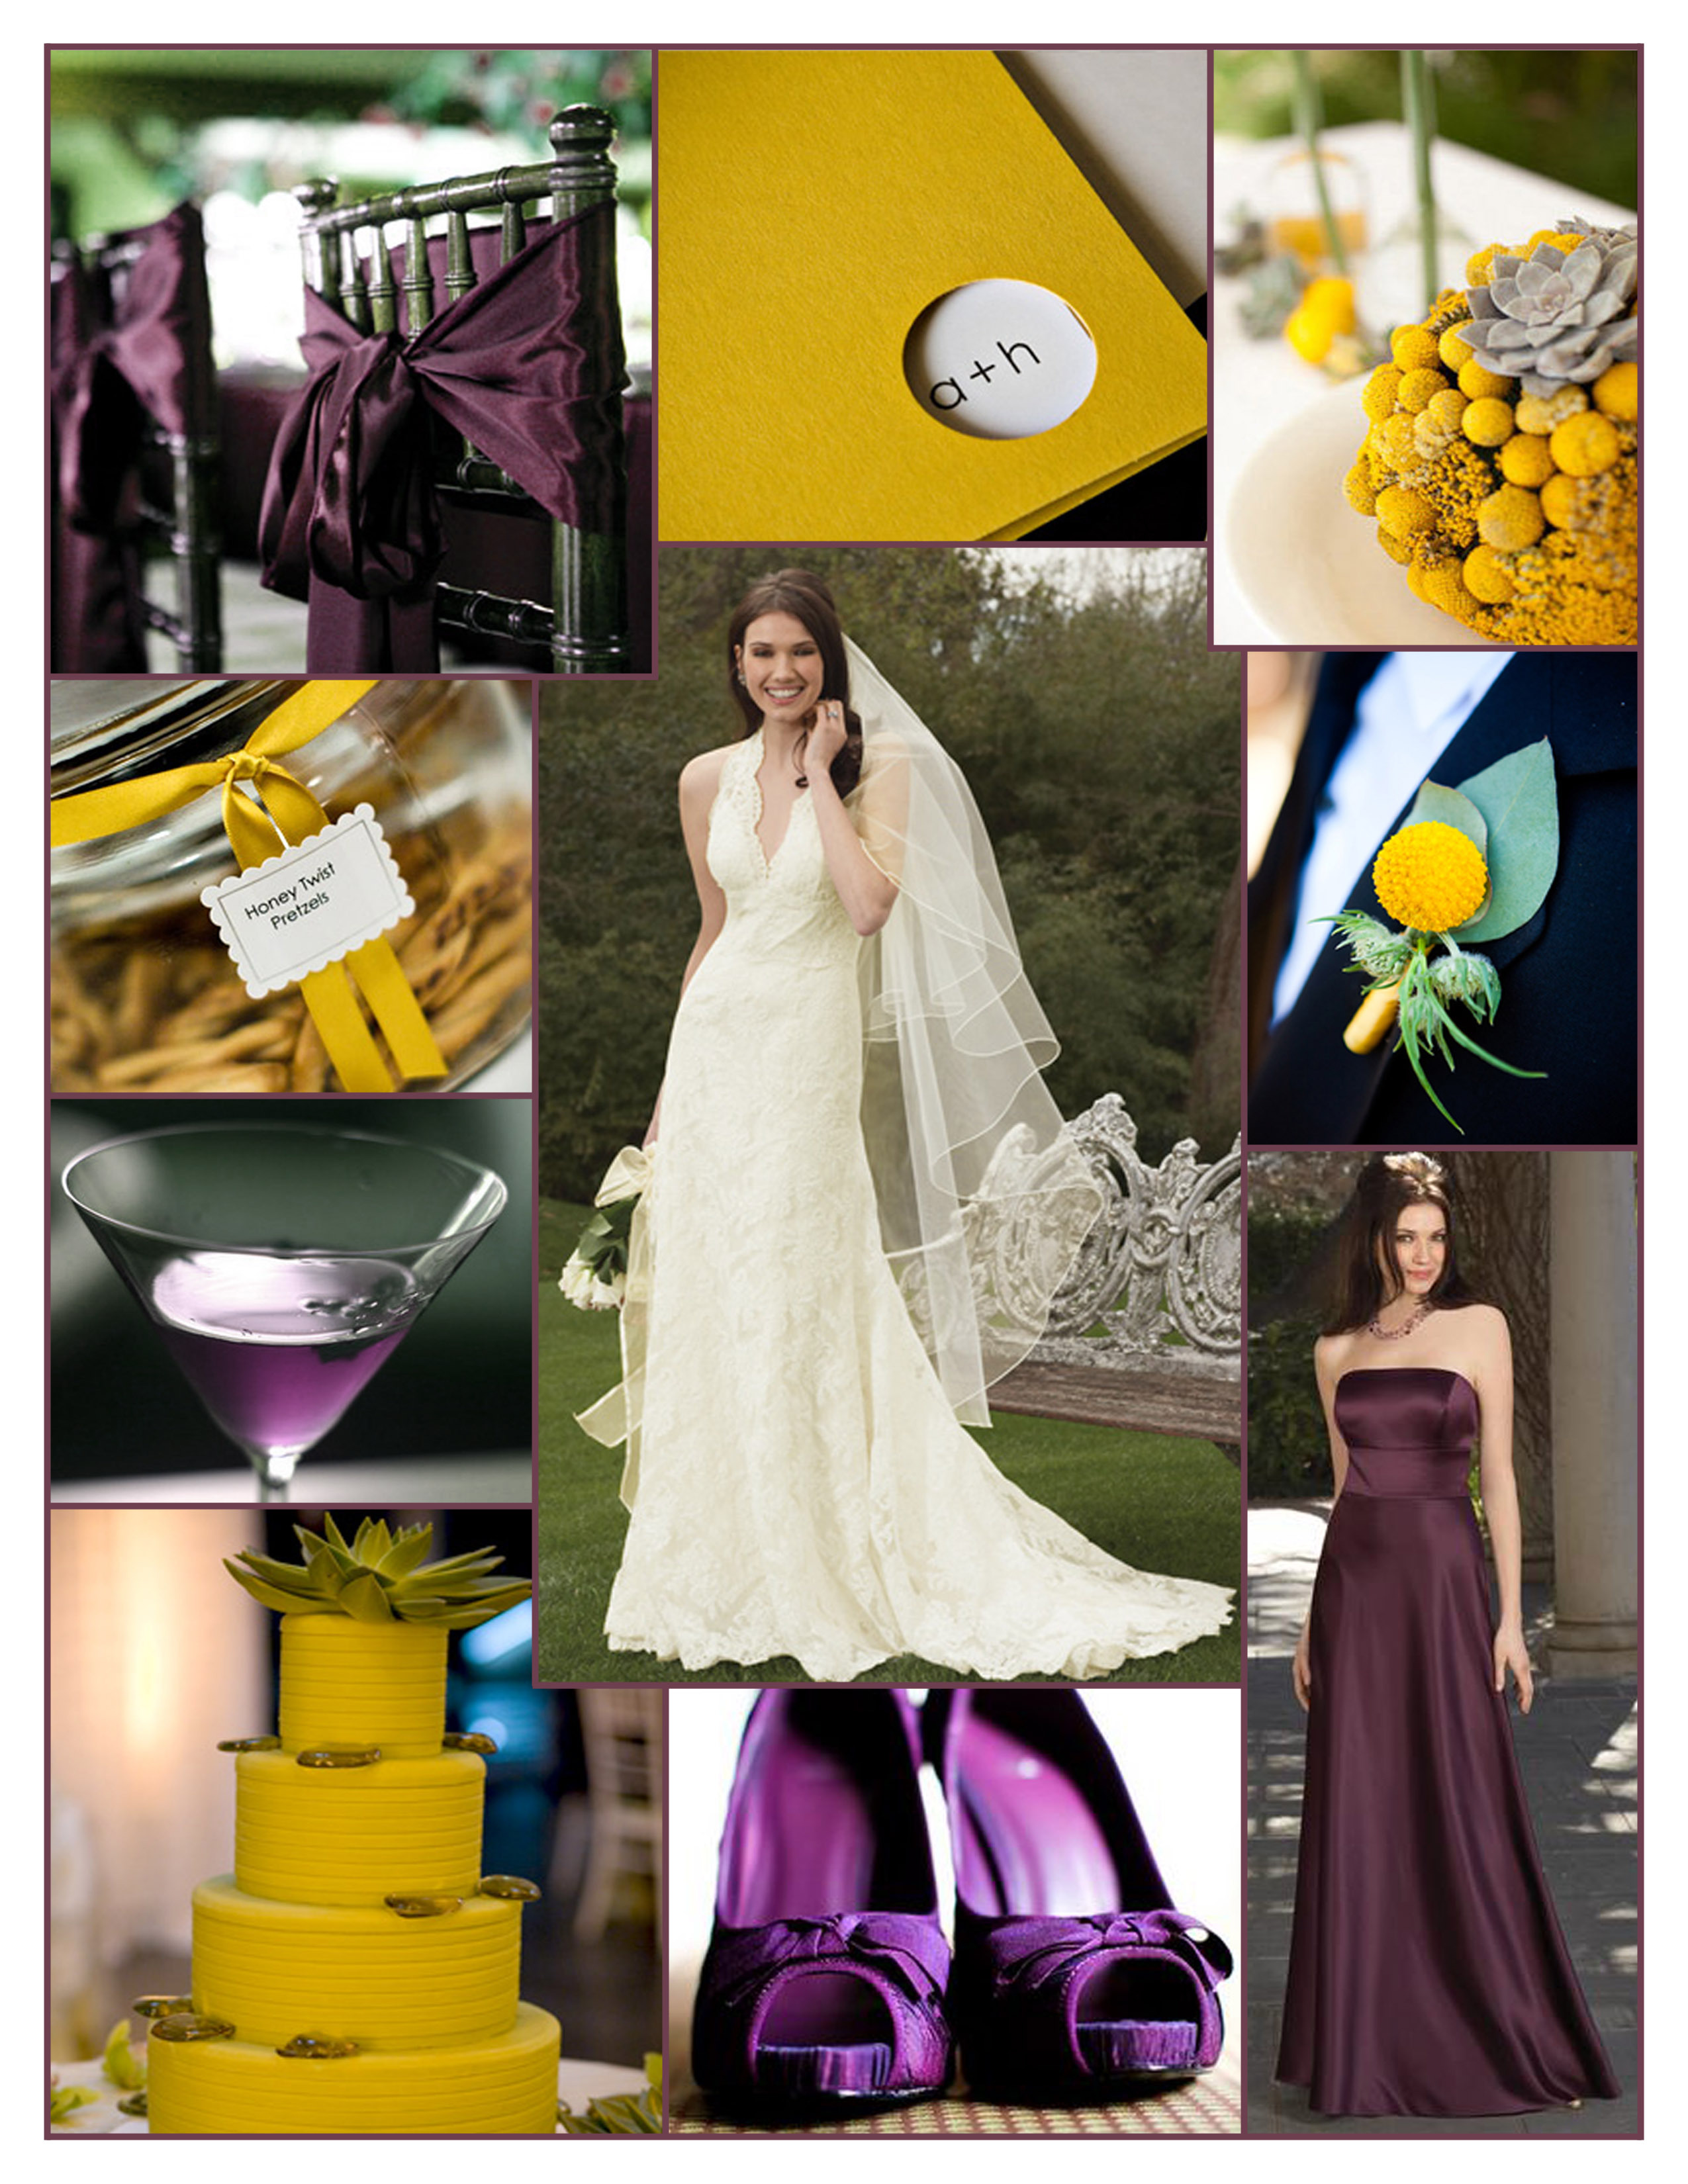 Inspiration, Flowers & Decor, Bridesmaids, Bridesmaids Dresses, Wedding Dresses, Stationery, Cakes, Fashion, yellow, purple, cake, dress, Bridesmaid Bouquets, Invitations, Flowers, Board, Watters, Mustard yellow, Plum purple, Flower Wedding Dresses